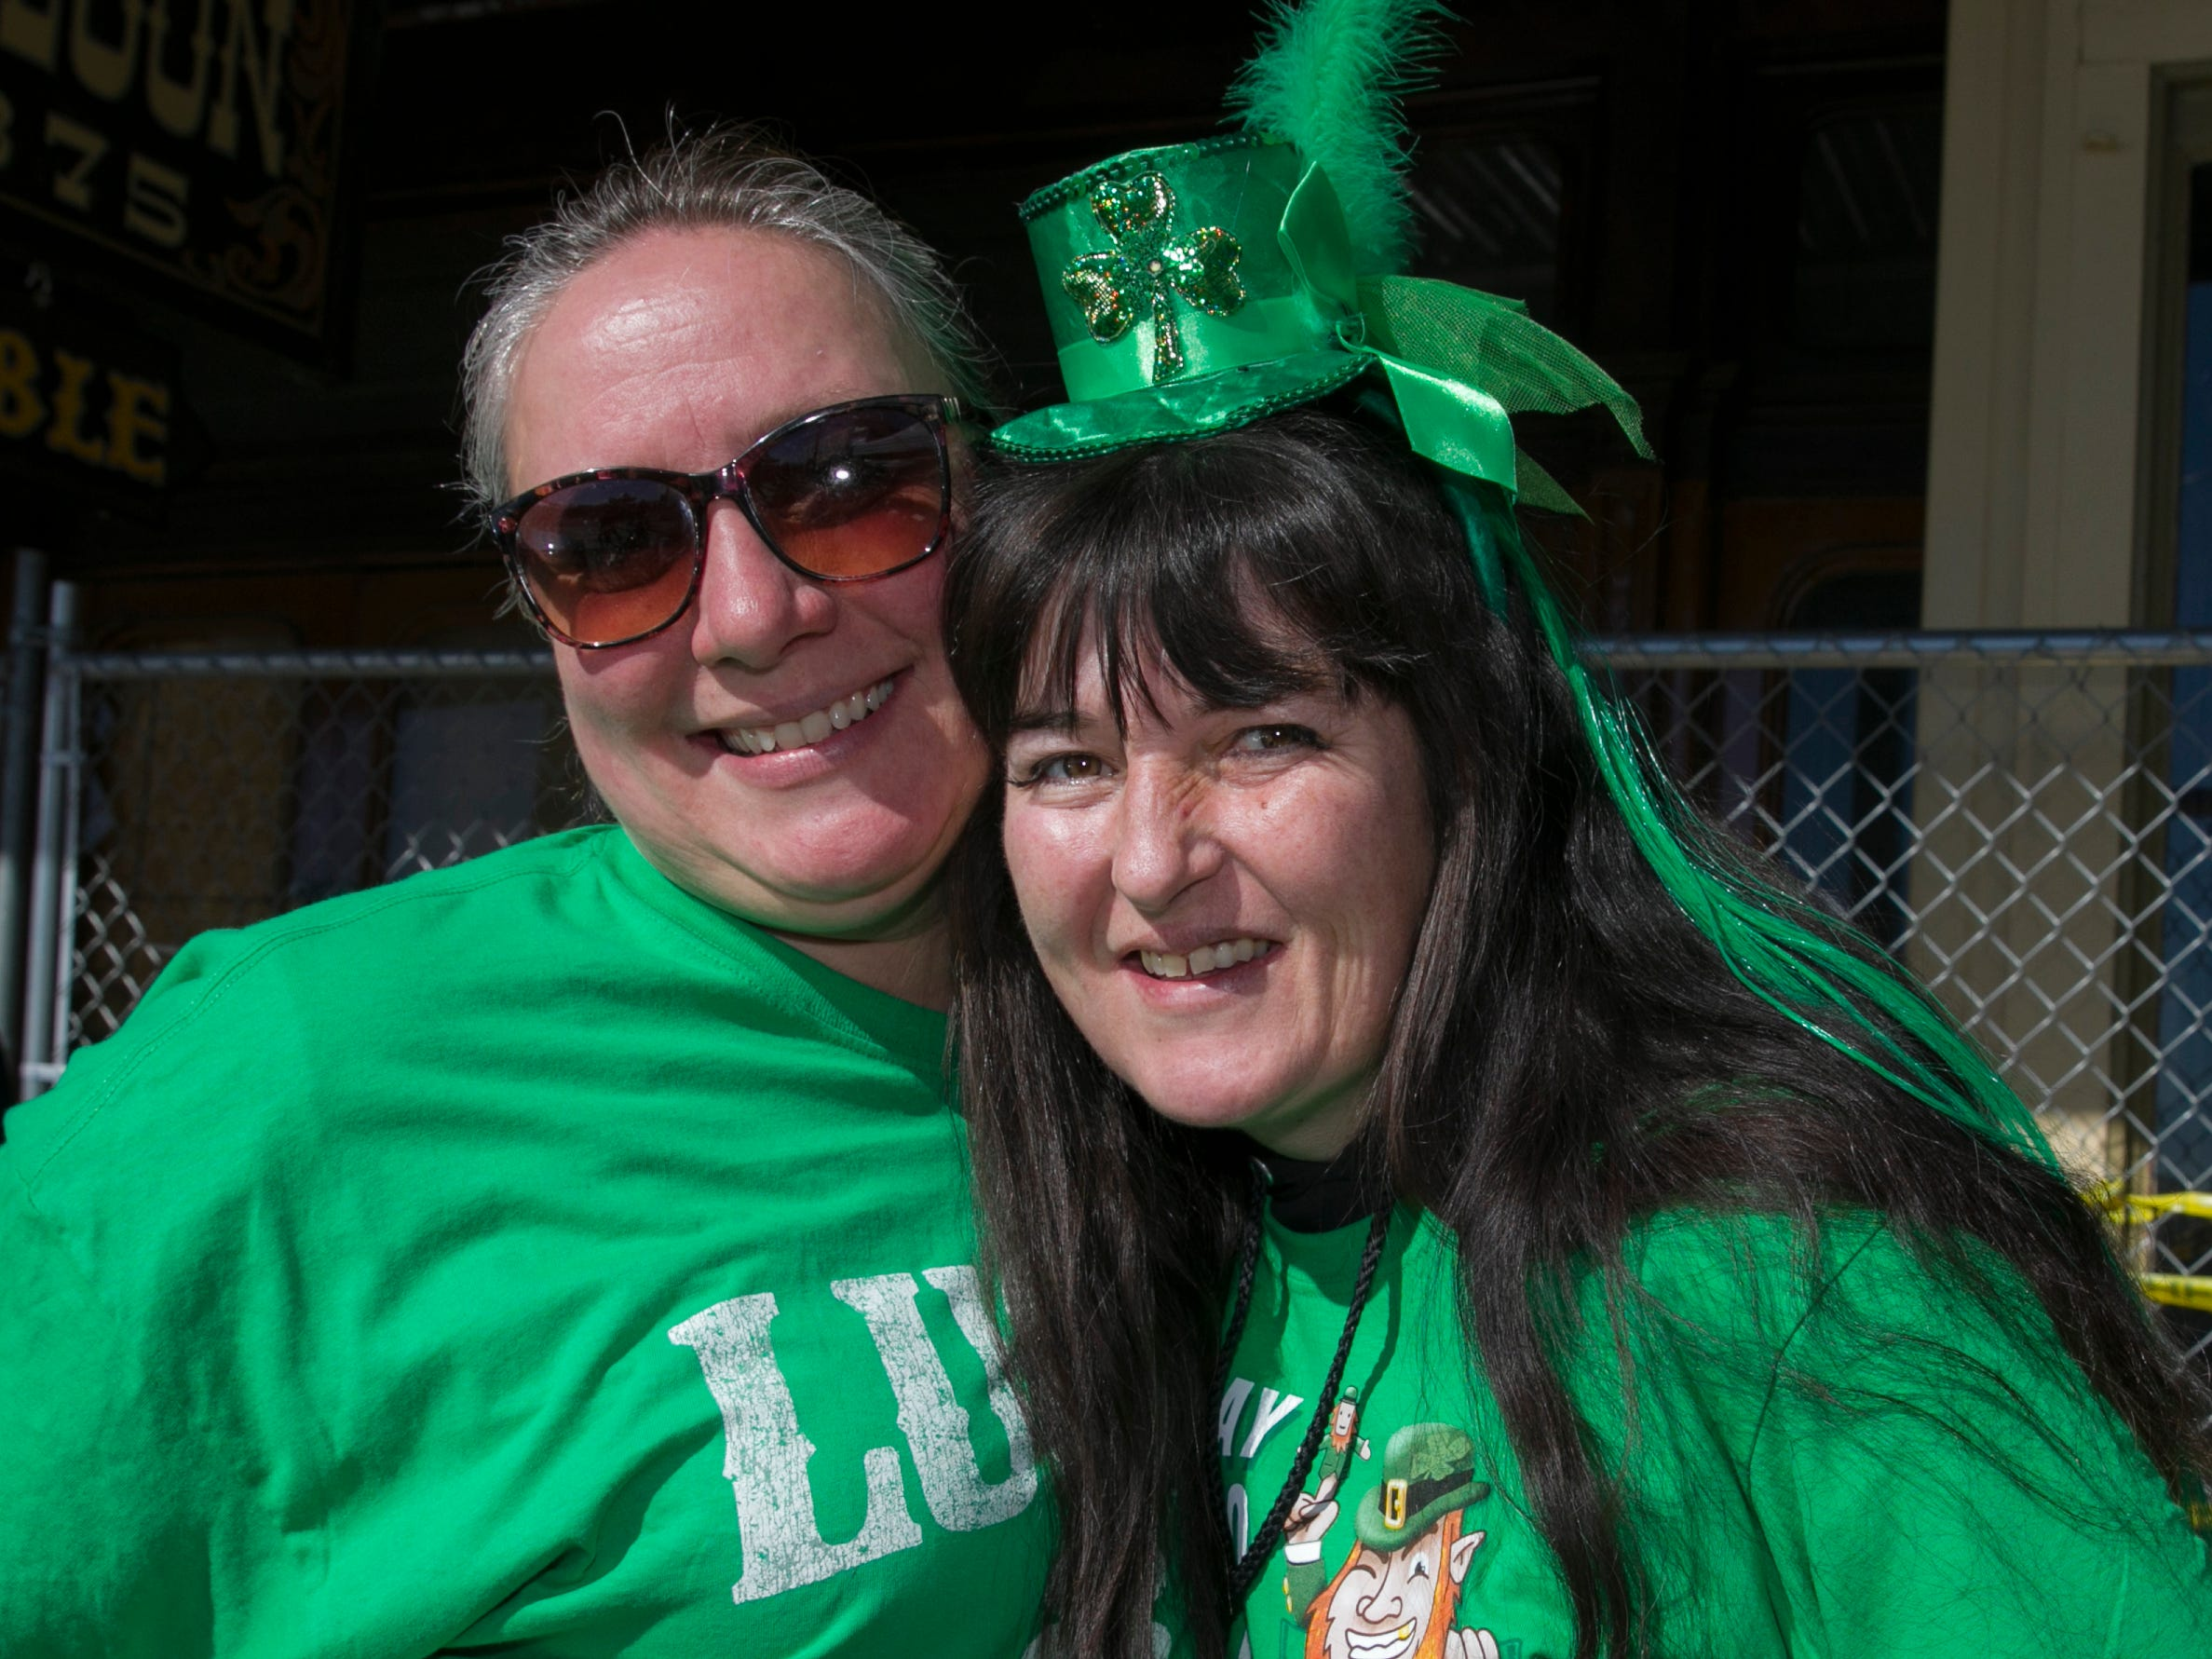 Victoria Child and Cami Downing during the 28th annual Rocky Mountain Oyster Fry and St. Patrick's Day Parade in Virginia City, Nevada on Saturday March 16, 2019.